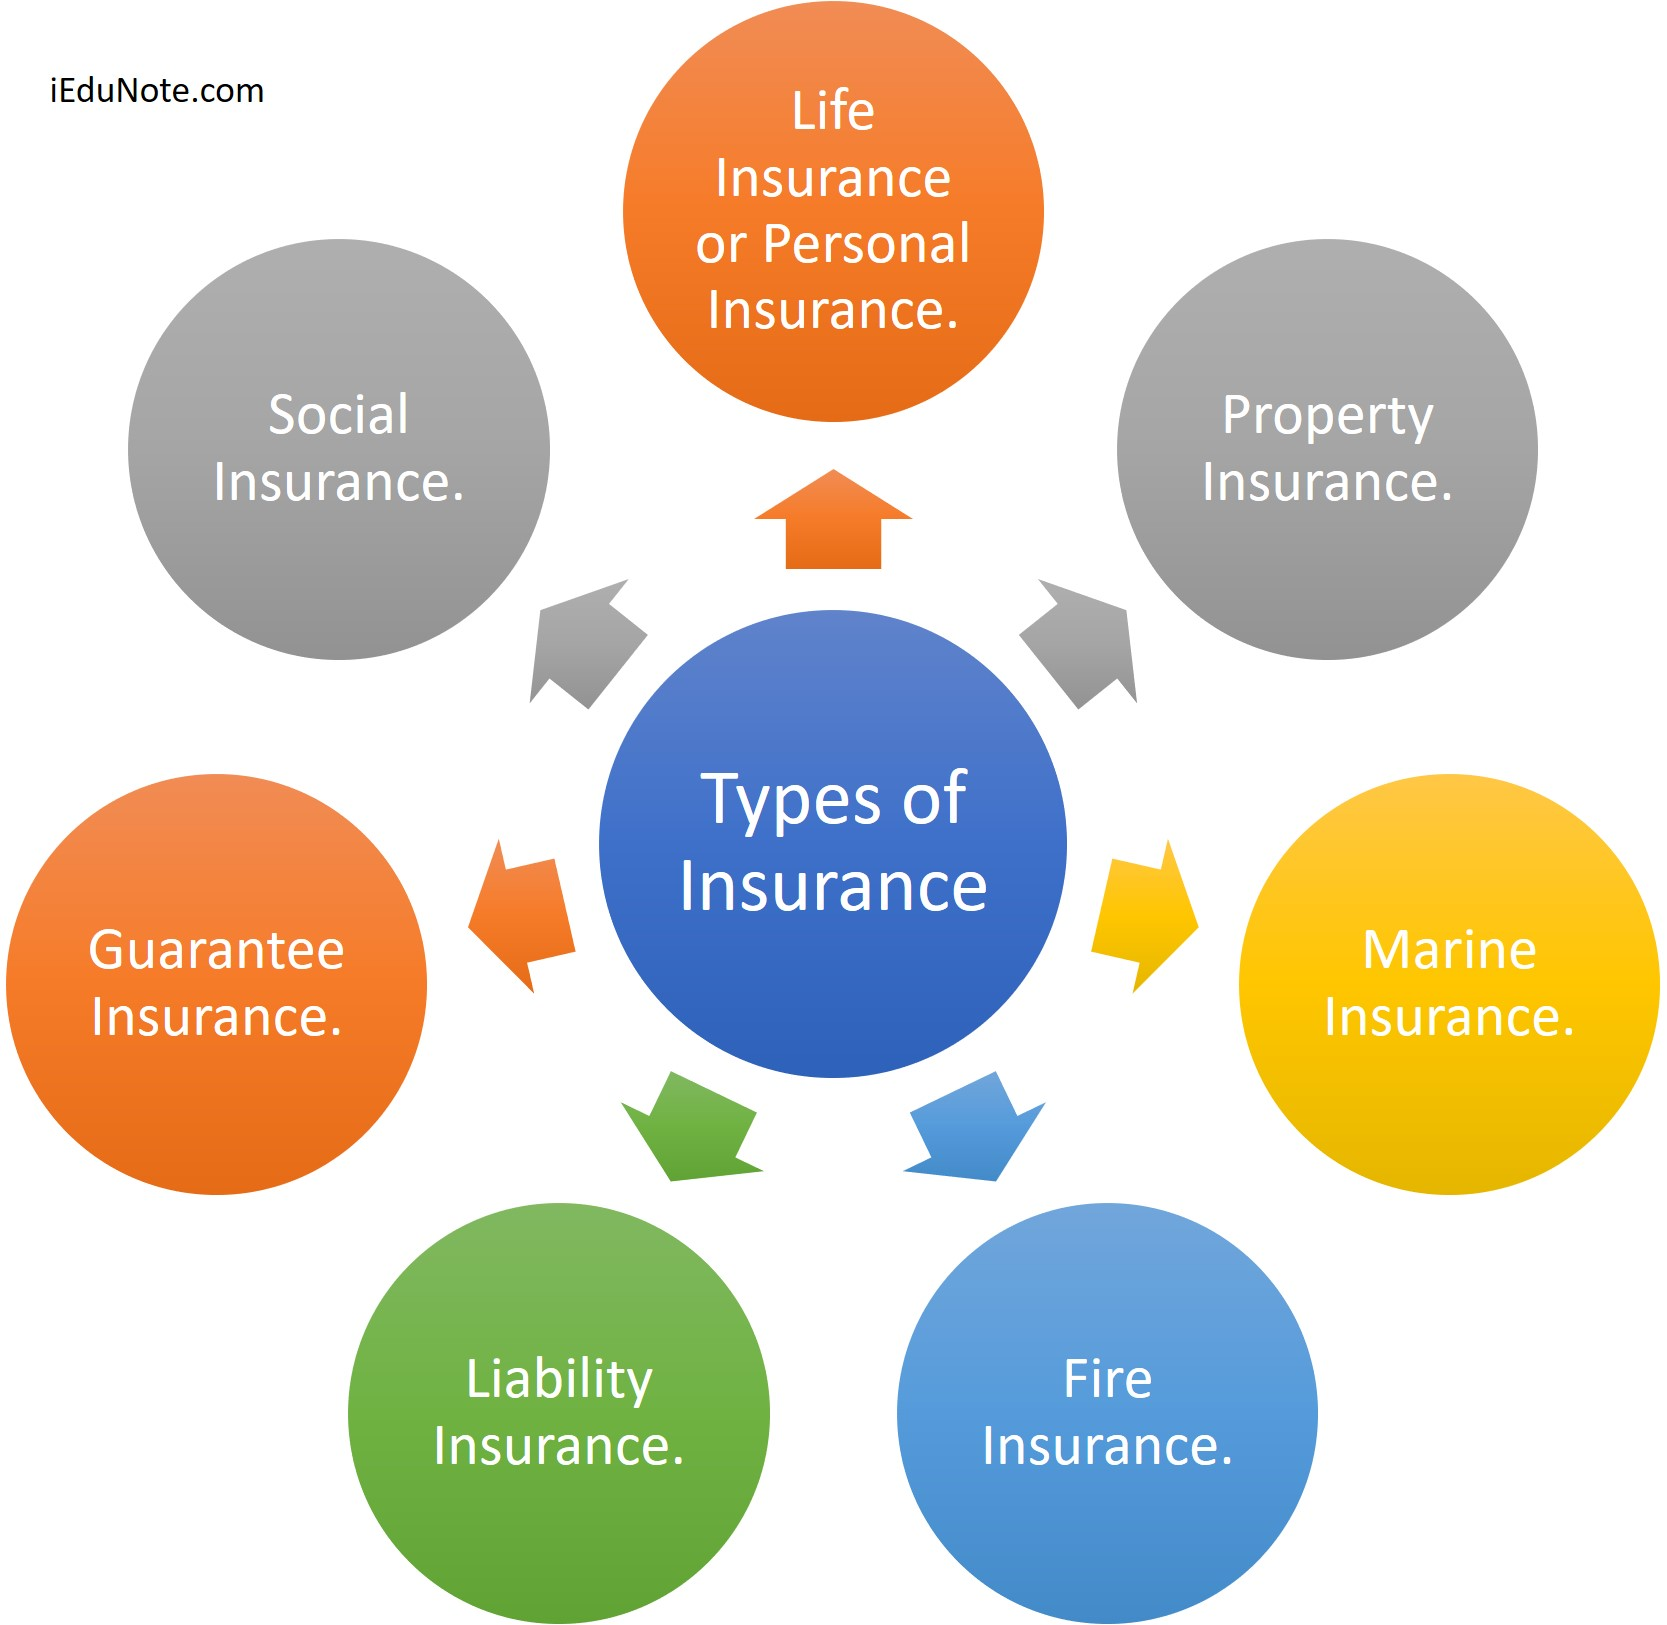 Investment Property Insurances